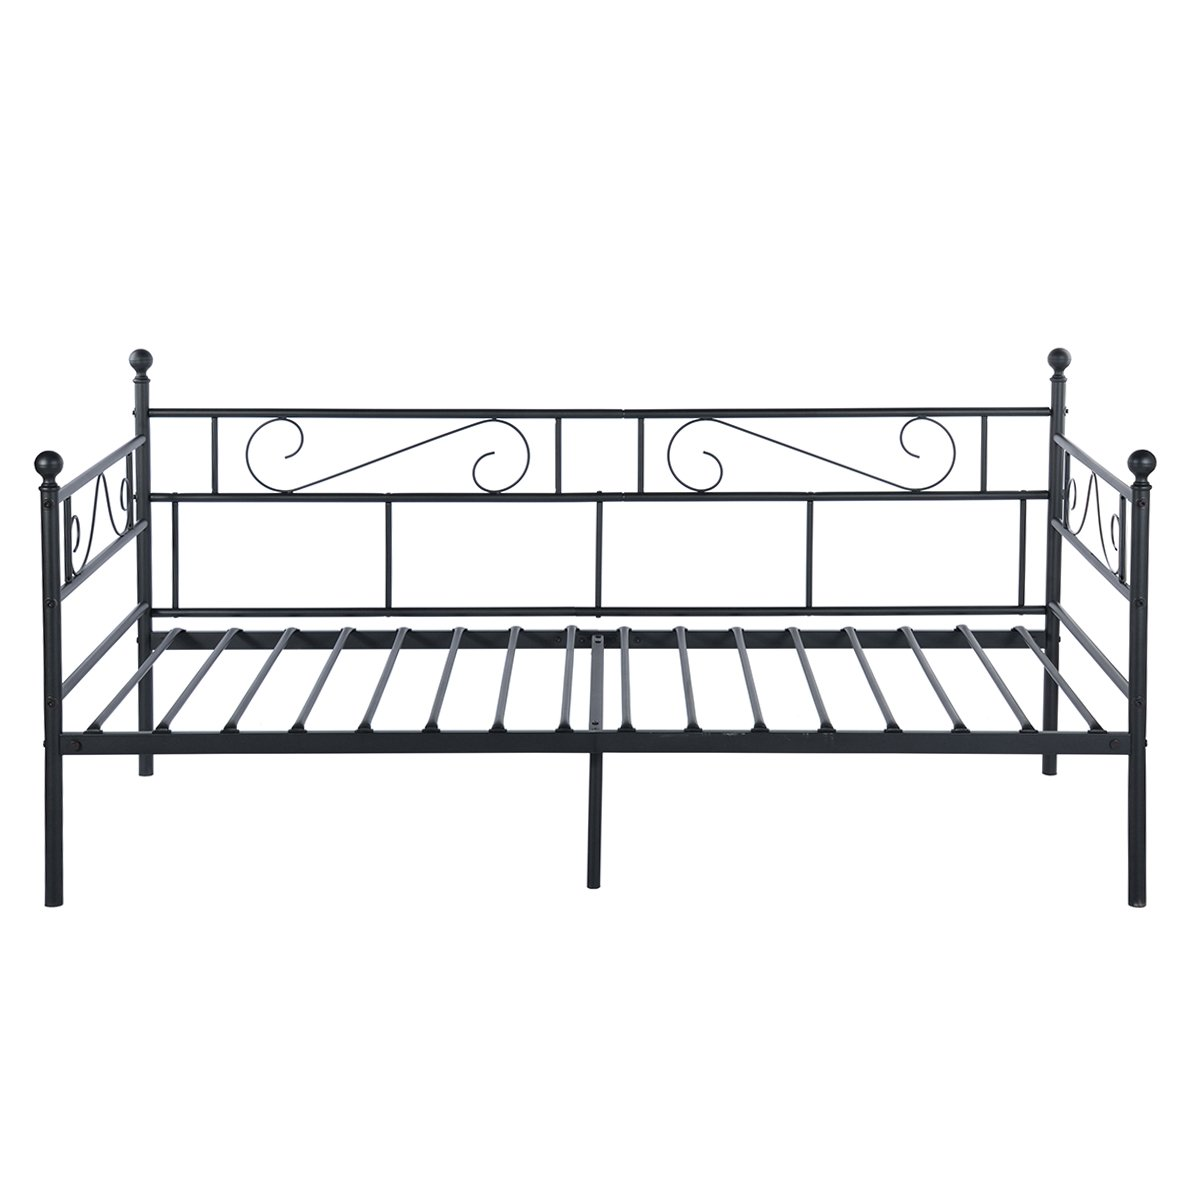 Greenforest Daybed Twin Bed Frame With Headboard And